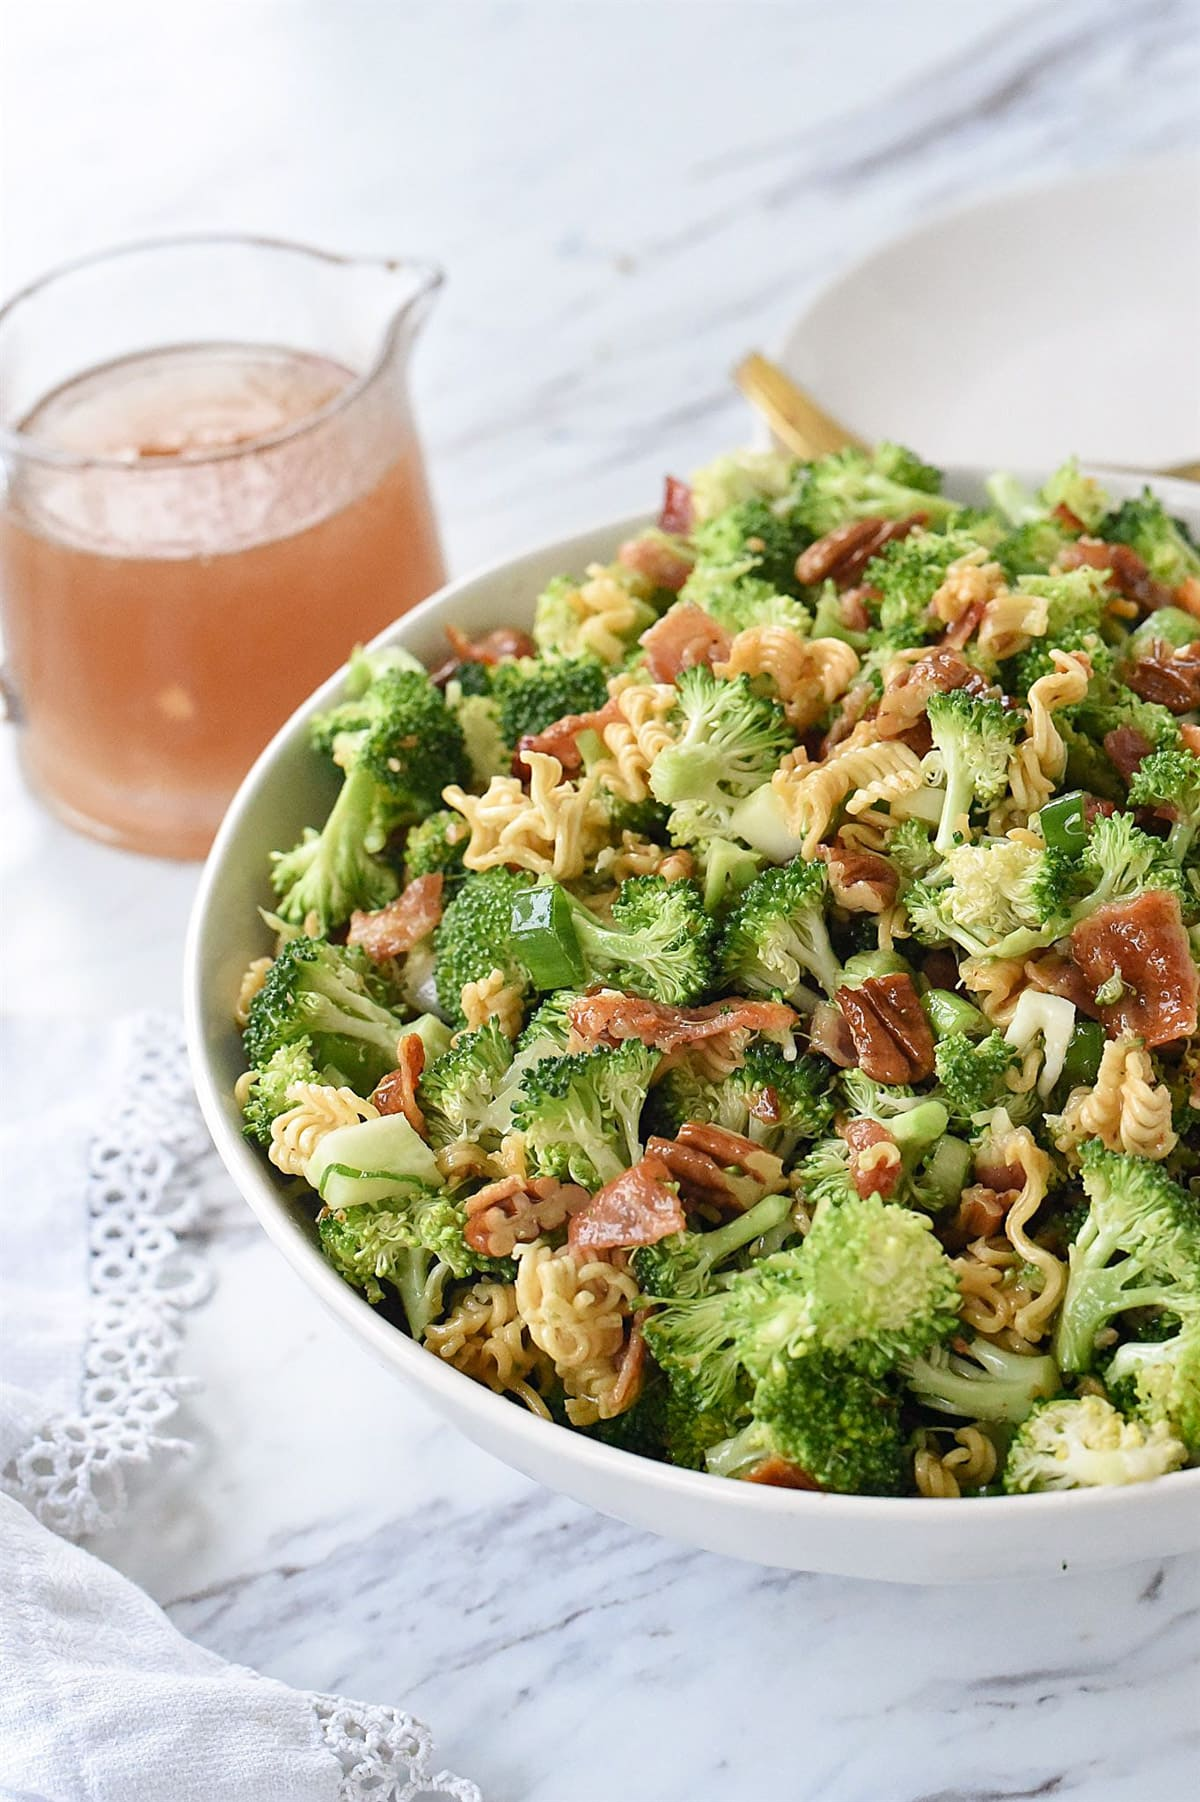 bowl of crunch broccoli salad